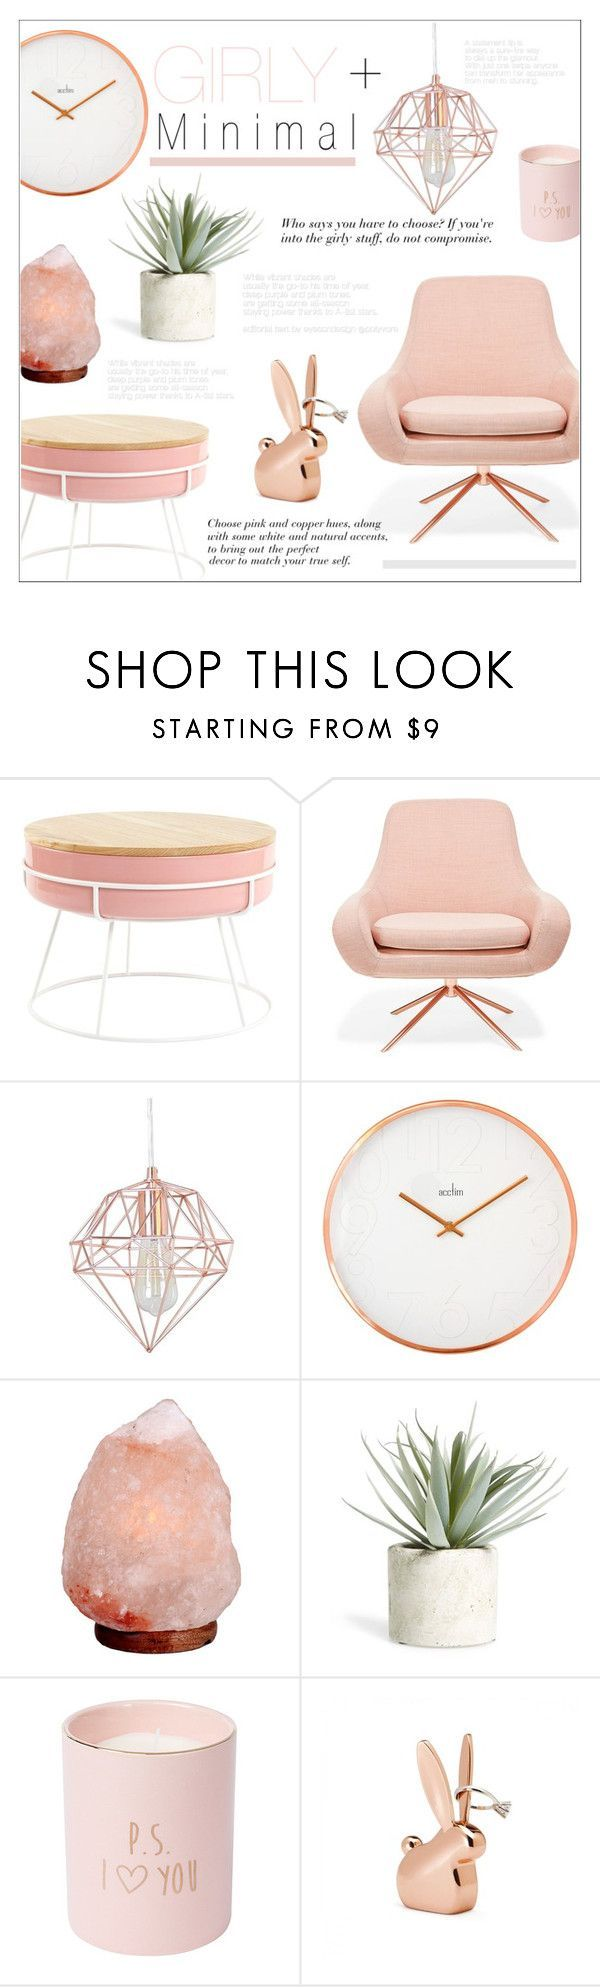 cool Girly & Minimal by http://top10homedecorpics.xyz/home-decor-accessories/girly-minimal/